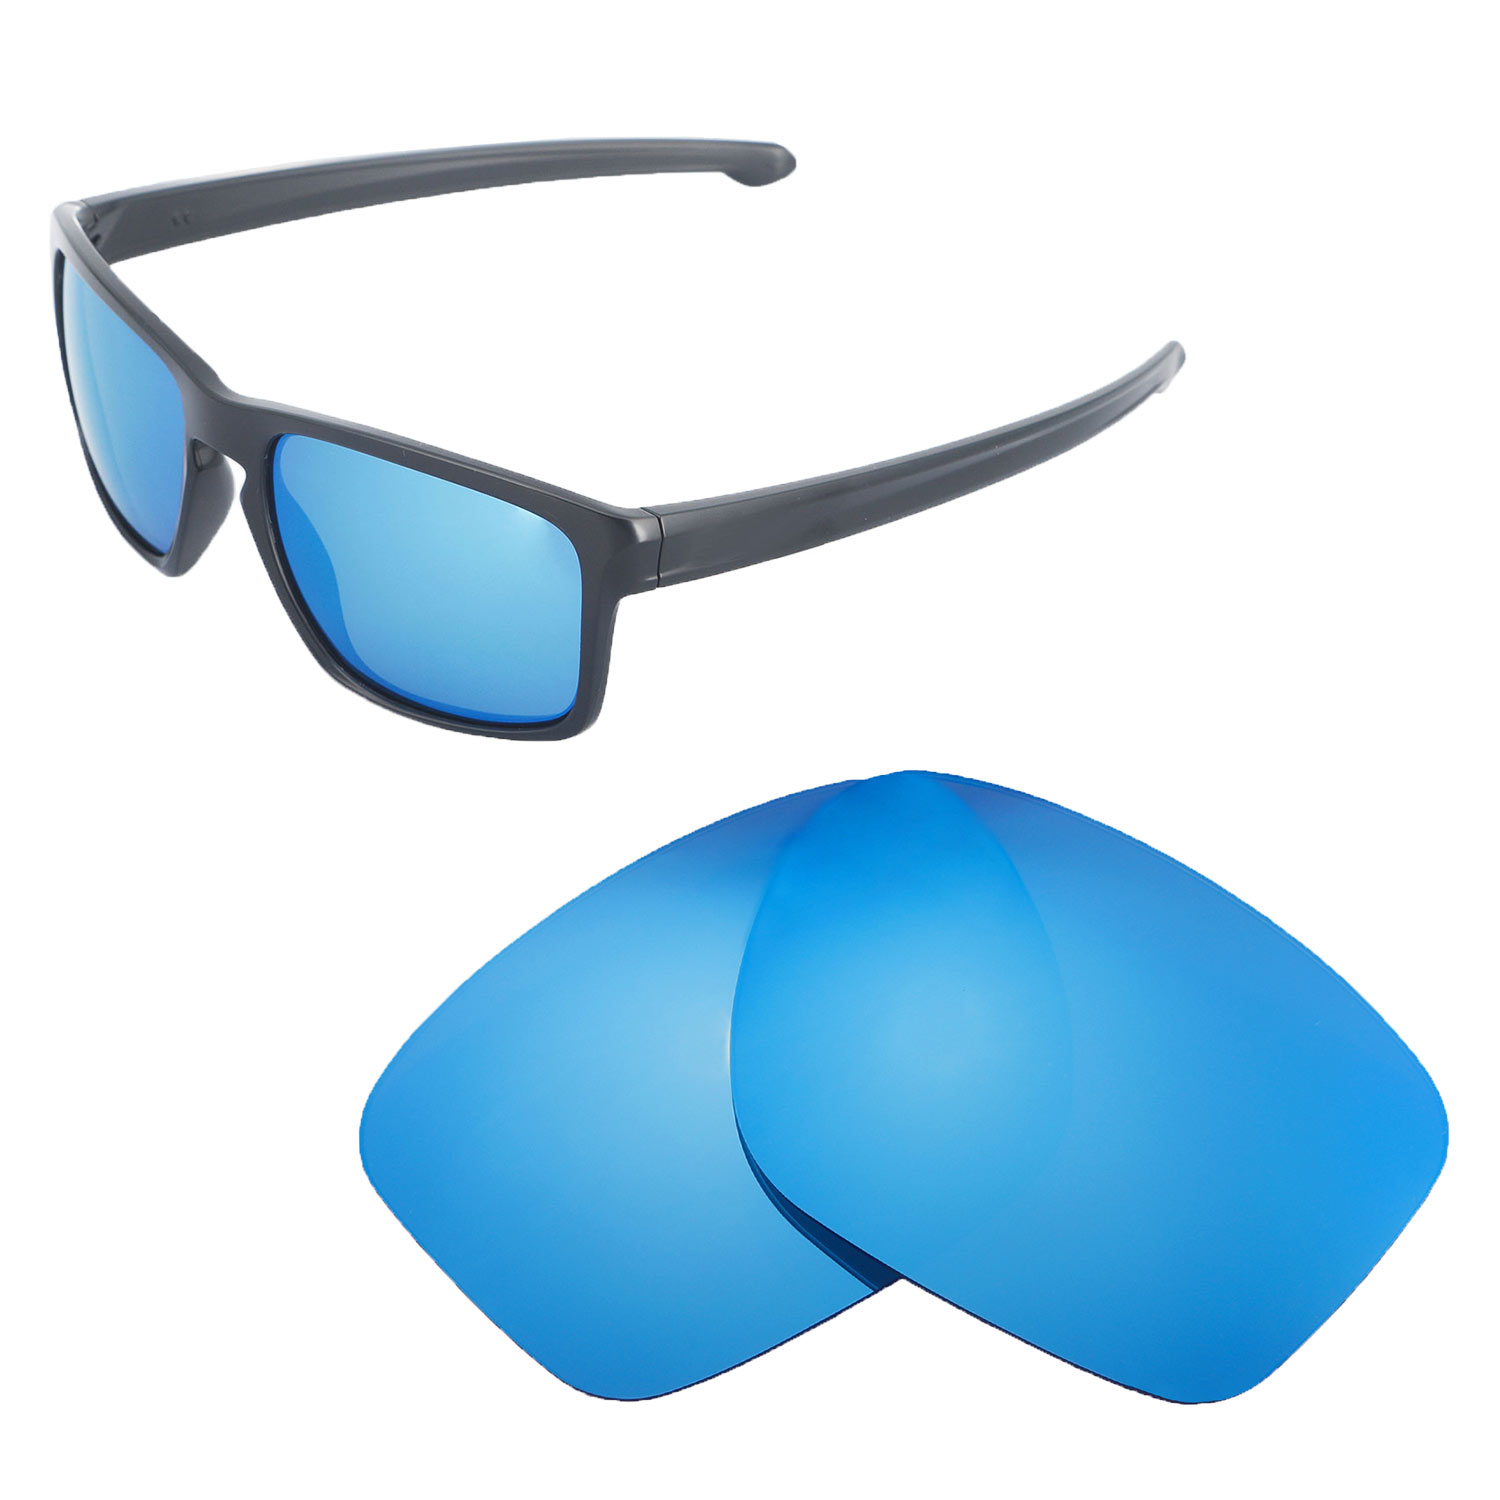 08383ab32a Details about New Walleva Ice Blue Polarized Replacement Lenses For Oakley  Sliver Sunglasses